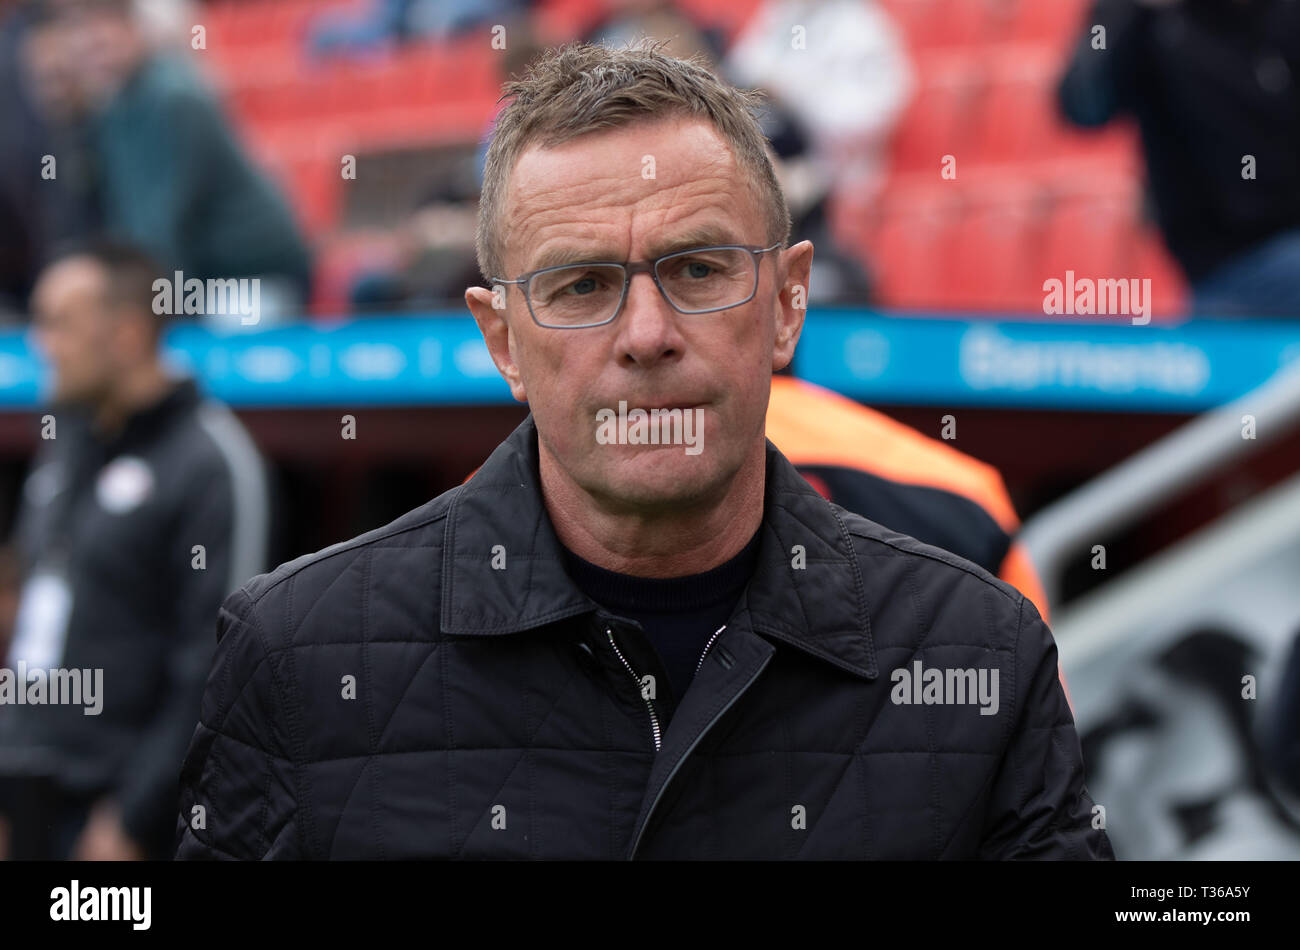 Leverkusen, Germany, April 6 2019, Bundesliga, Bayer 04 Leverkusen vs RB Leipzig: Manager Ralf Rangnick (Leipzig) looks on.                   Credit:  - Stock Image